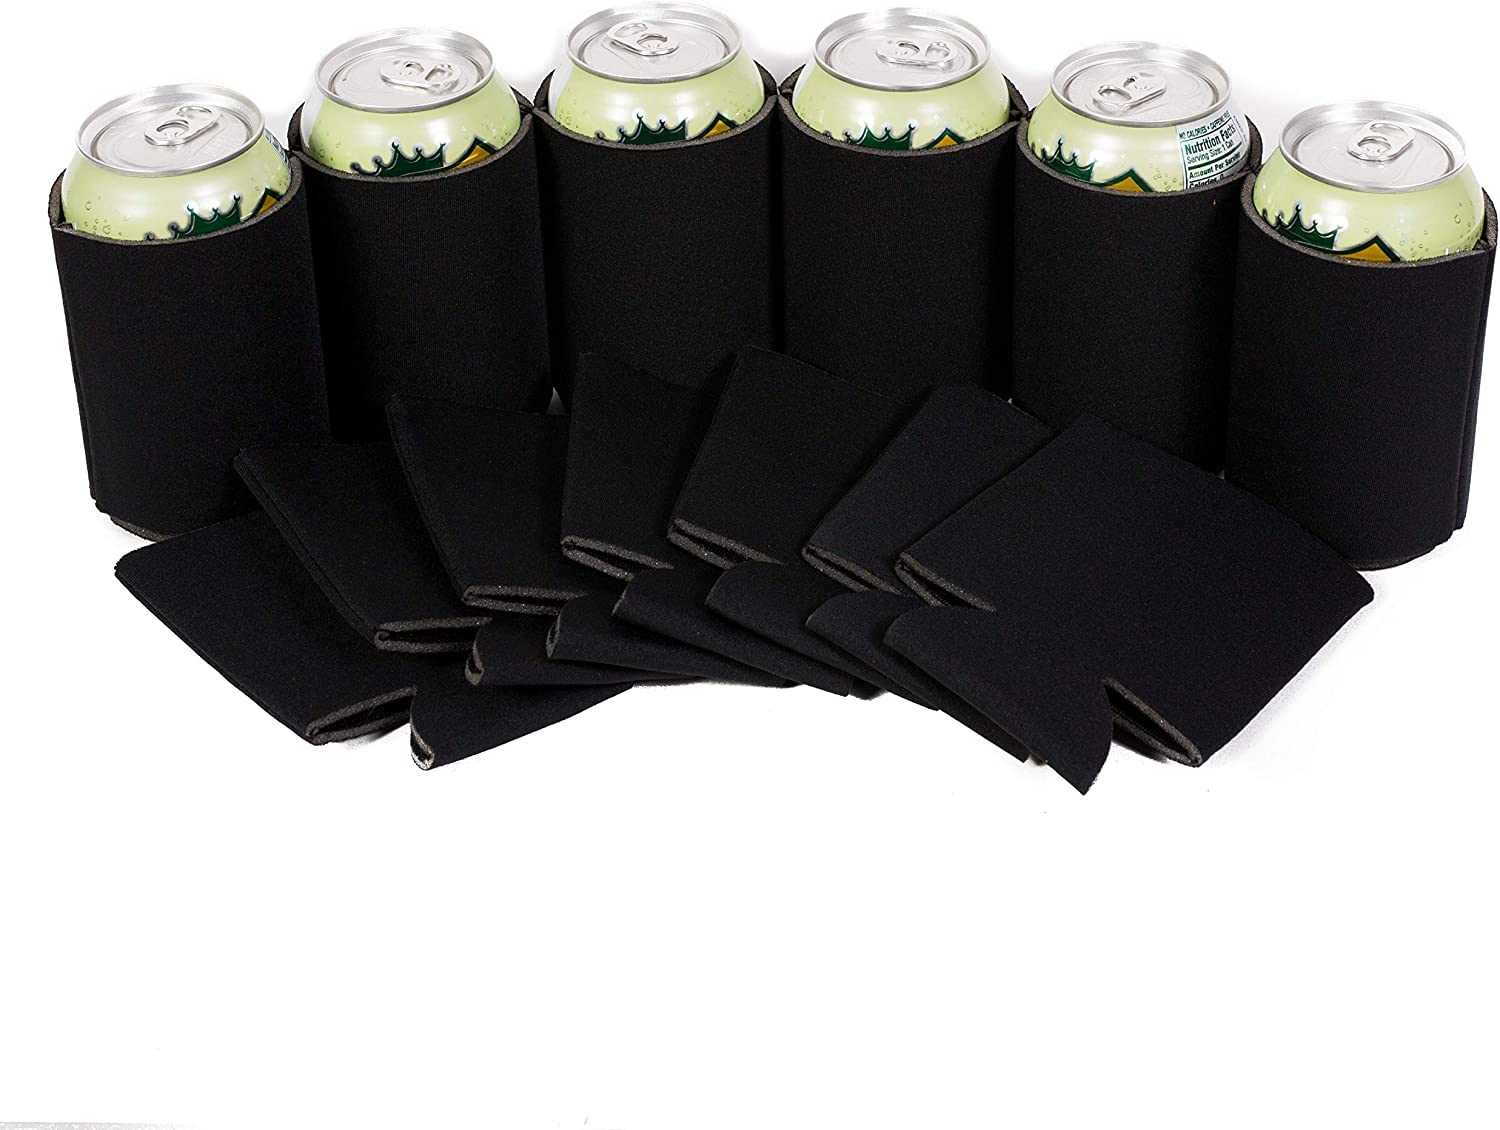 QualityPerfection Beer Can Coolers Sleeves,Collapsible Bottle,Soda Holder | Insulated Coolie for Personalized Sublimation,HTV,Vinyl Sleeves| Perfect For DIY Projects,Weddings Parties,Events(12, Black)